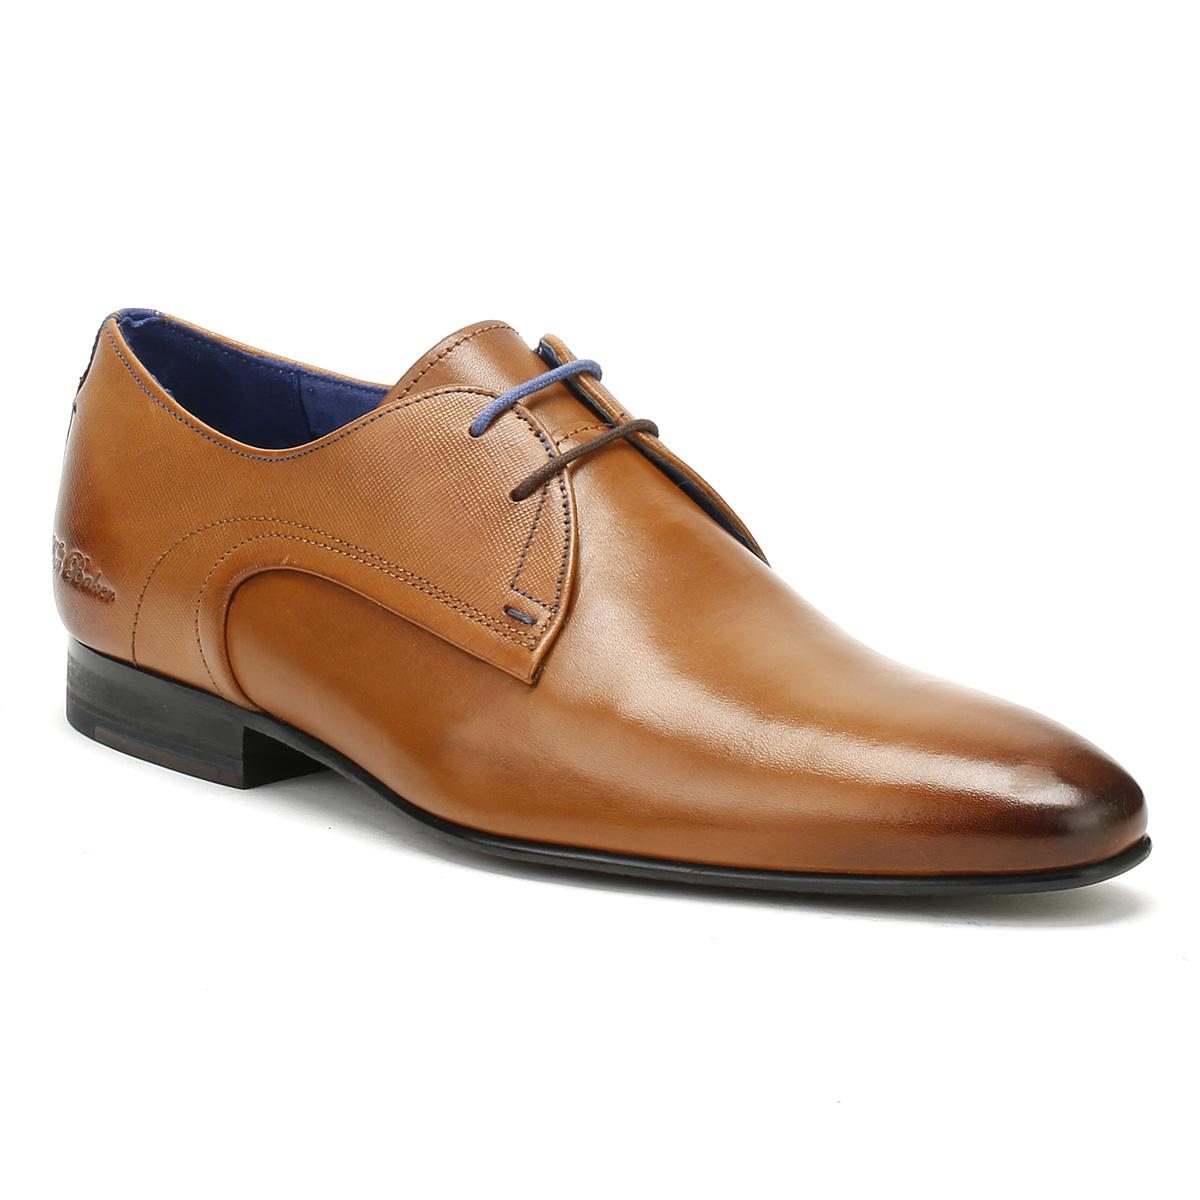 dea42c5e1 Ted Baker Mens Tan Leather Peair Shoes in Brown for Men - Save 2% - Lyst